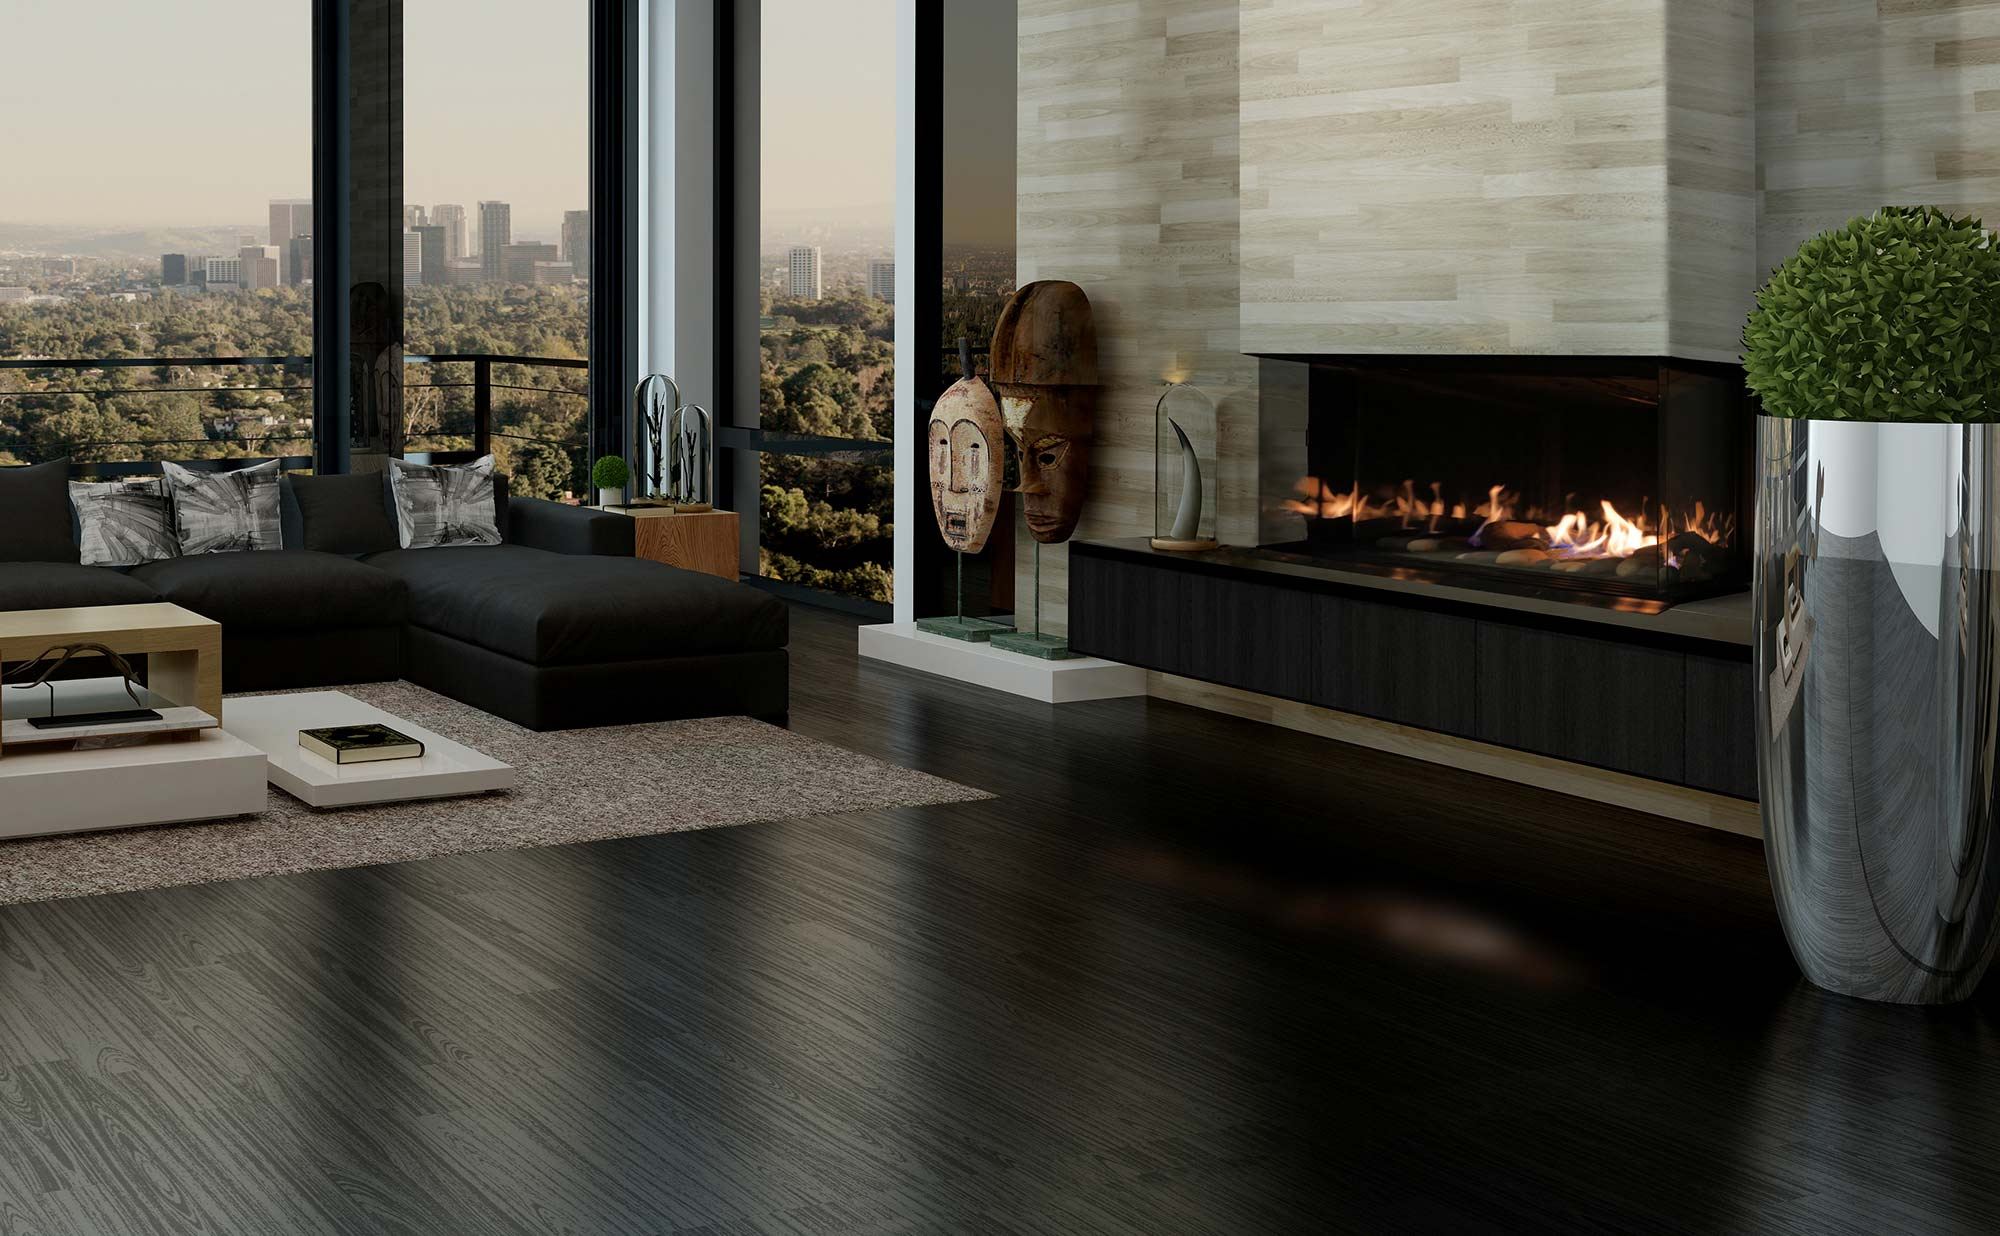 modern living room big windows fireplace